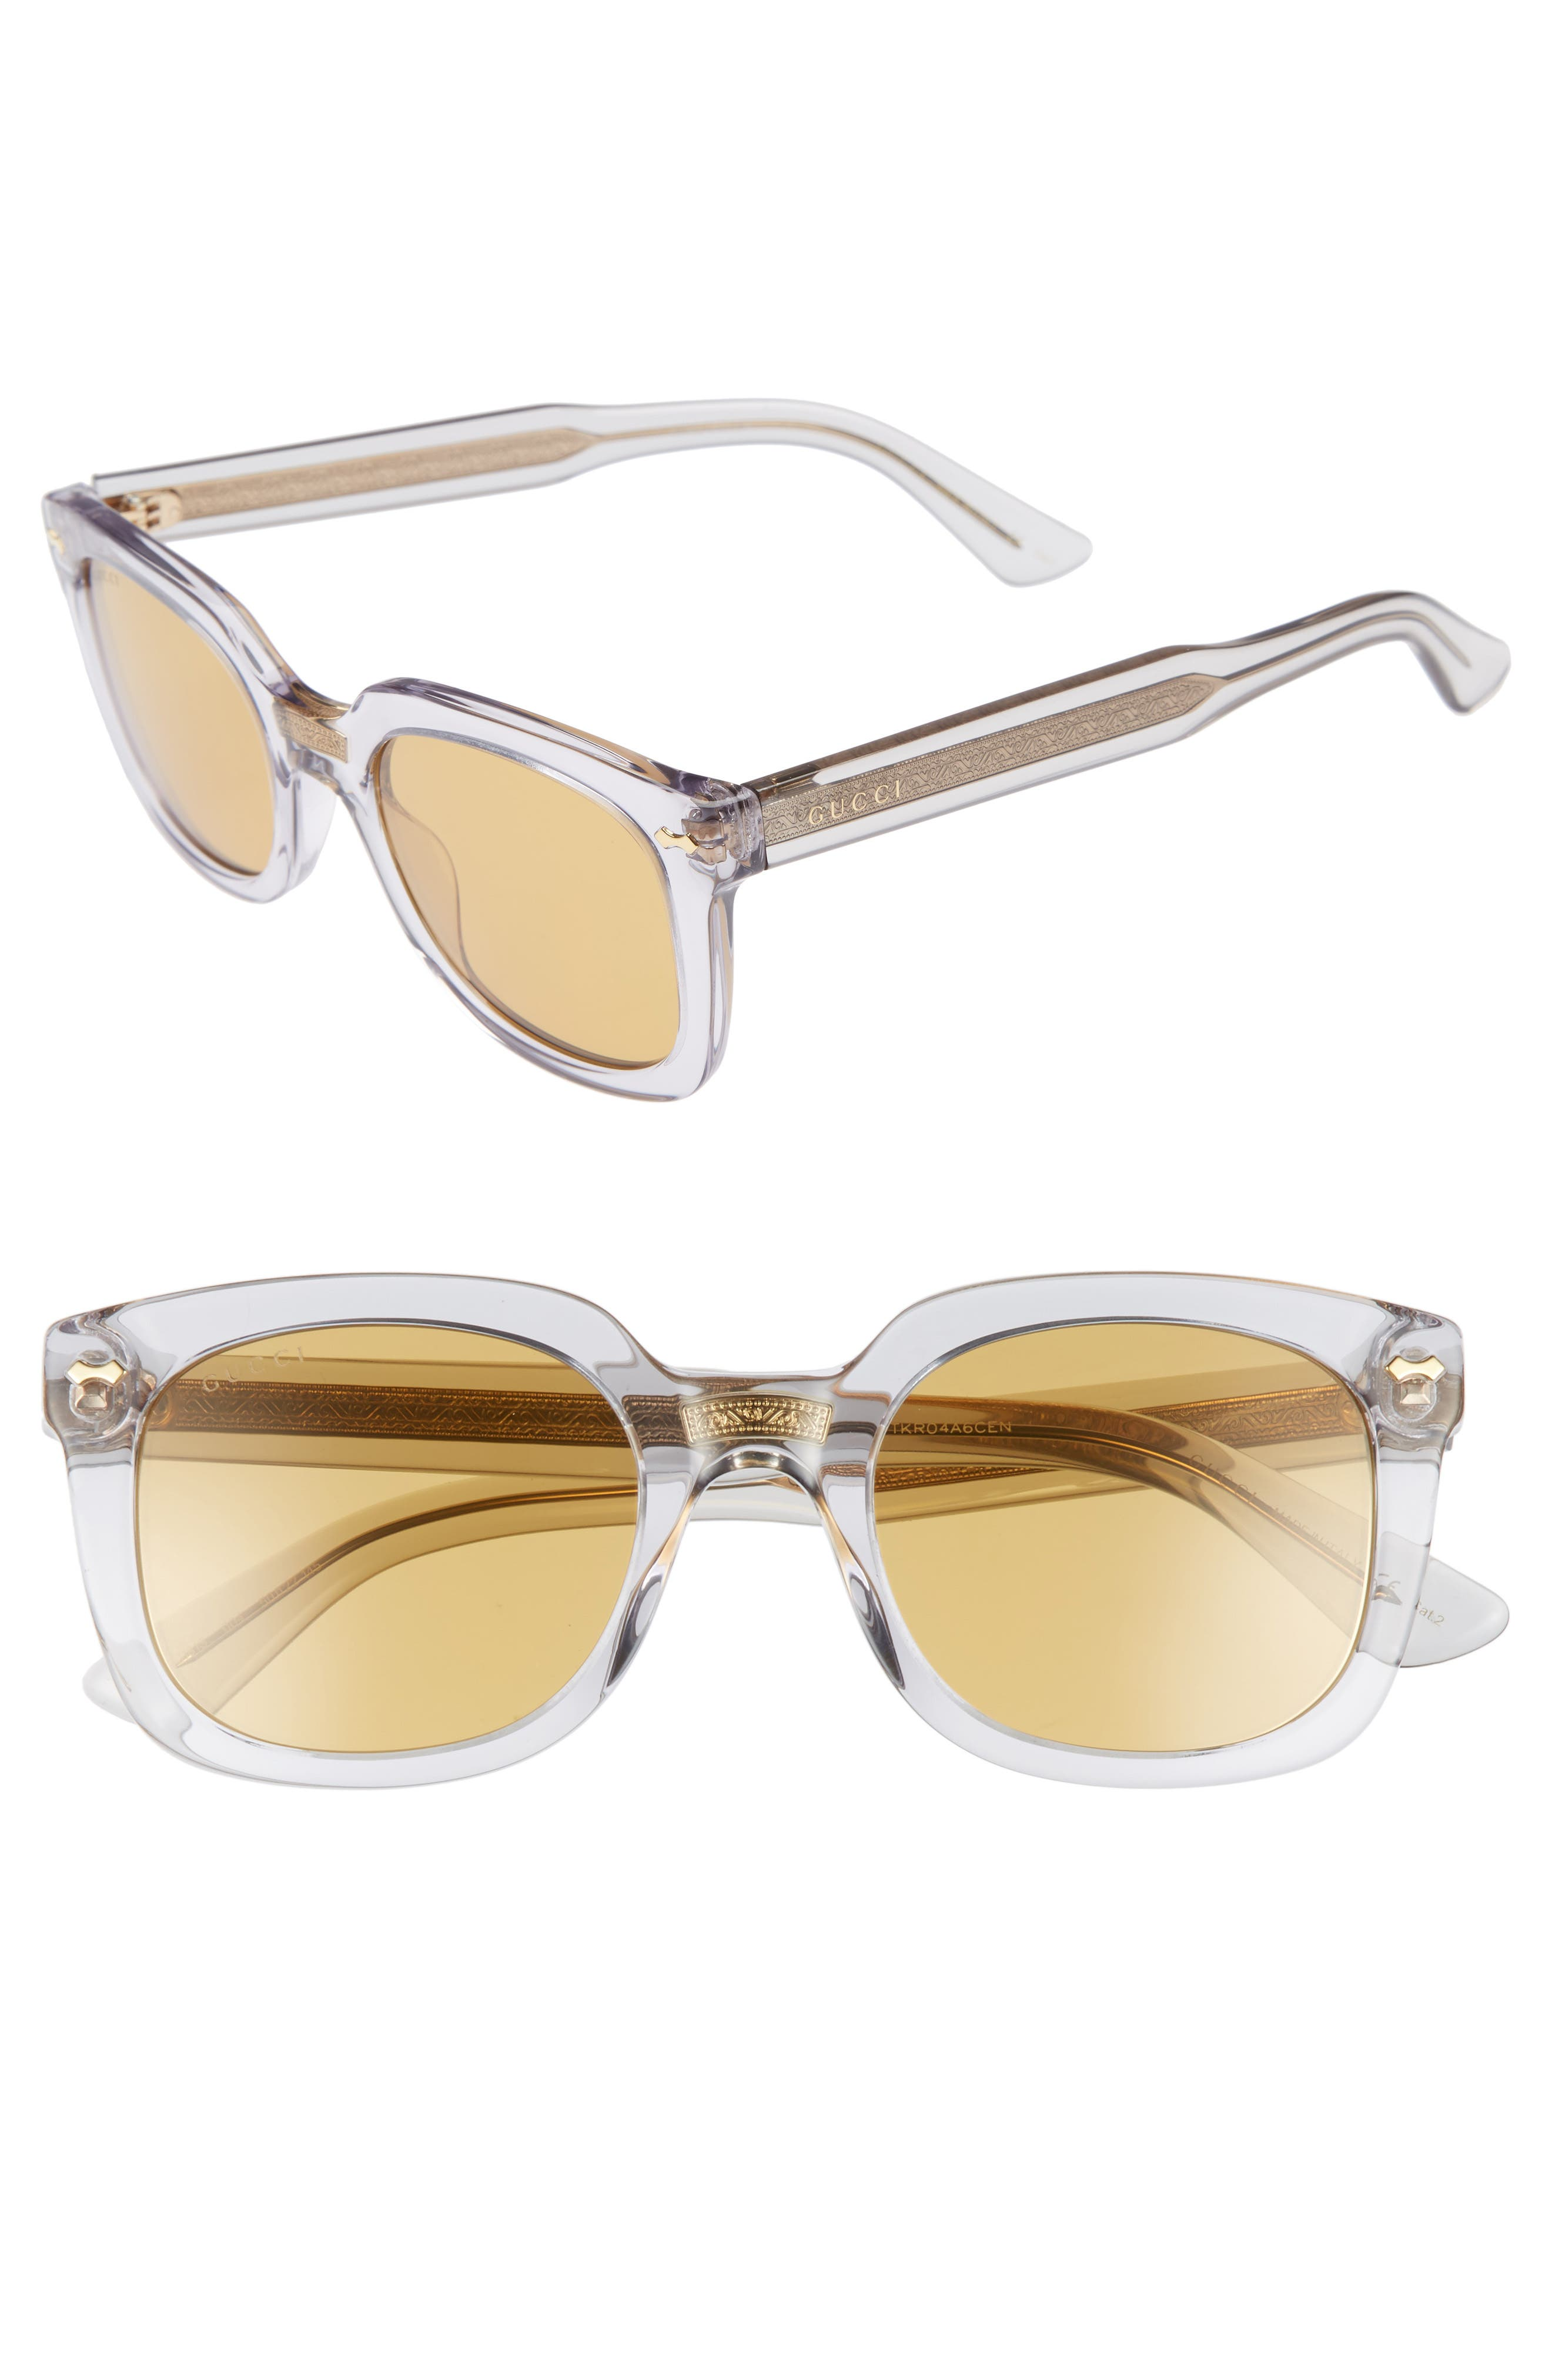 Alternate Image 1 Selected - Gucci 50mm Square Sunglasses